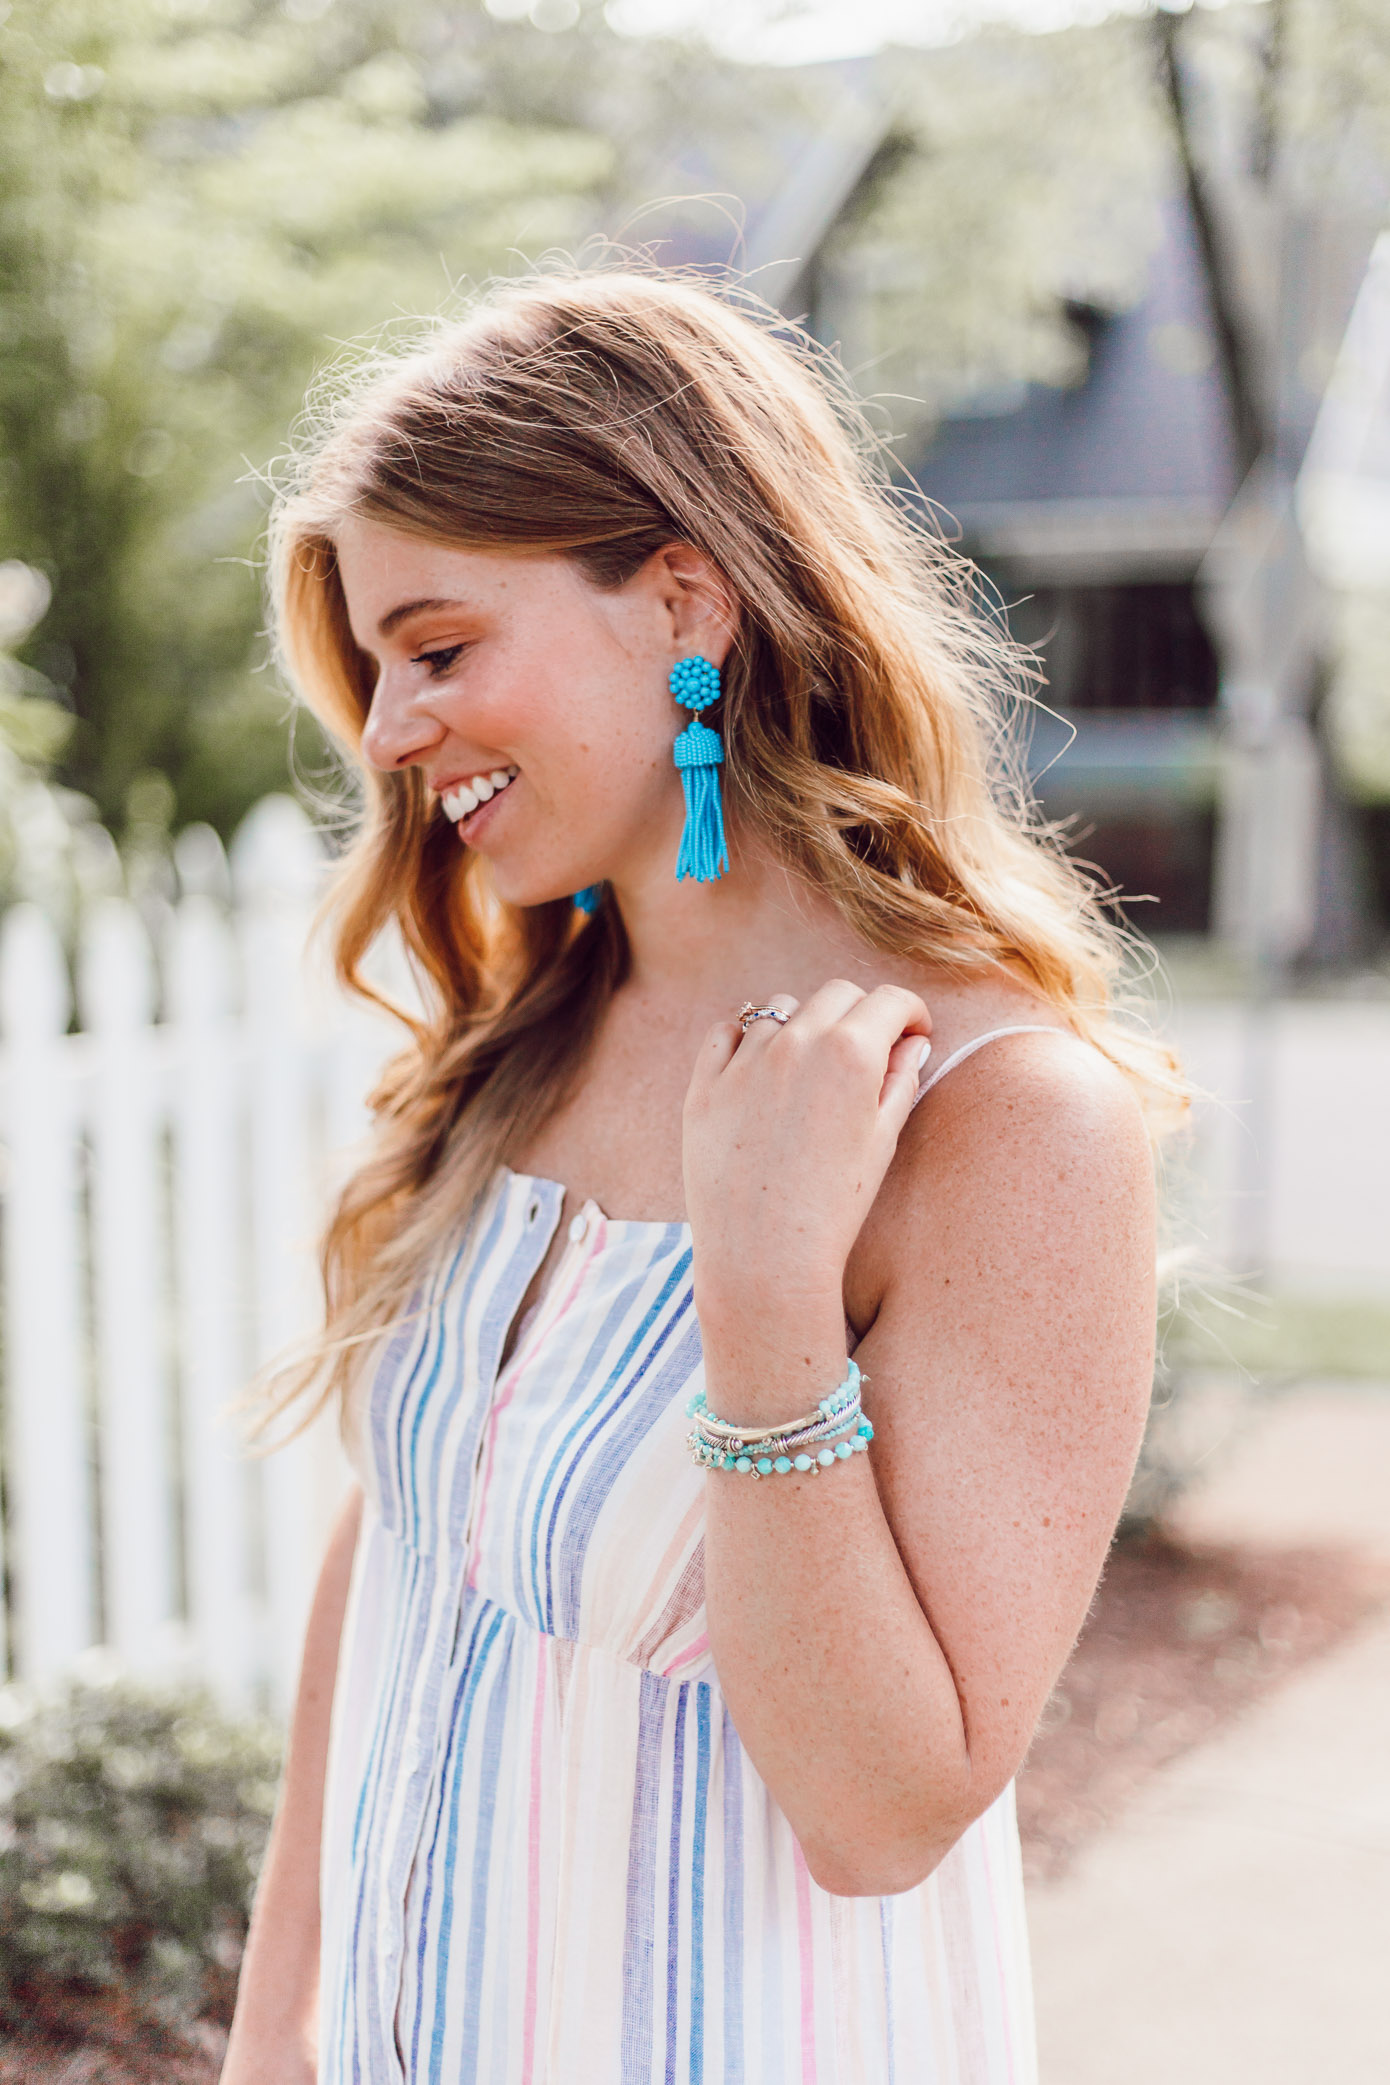 Summer Weekend Style from Friday to Sunday featured by Louella Reese | Splendid Striped Linen Maxi Dress, Turquoise Tassel Earrings